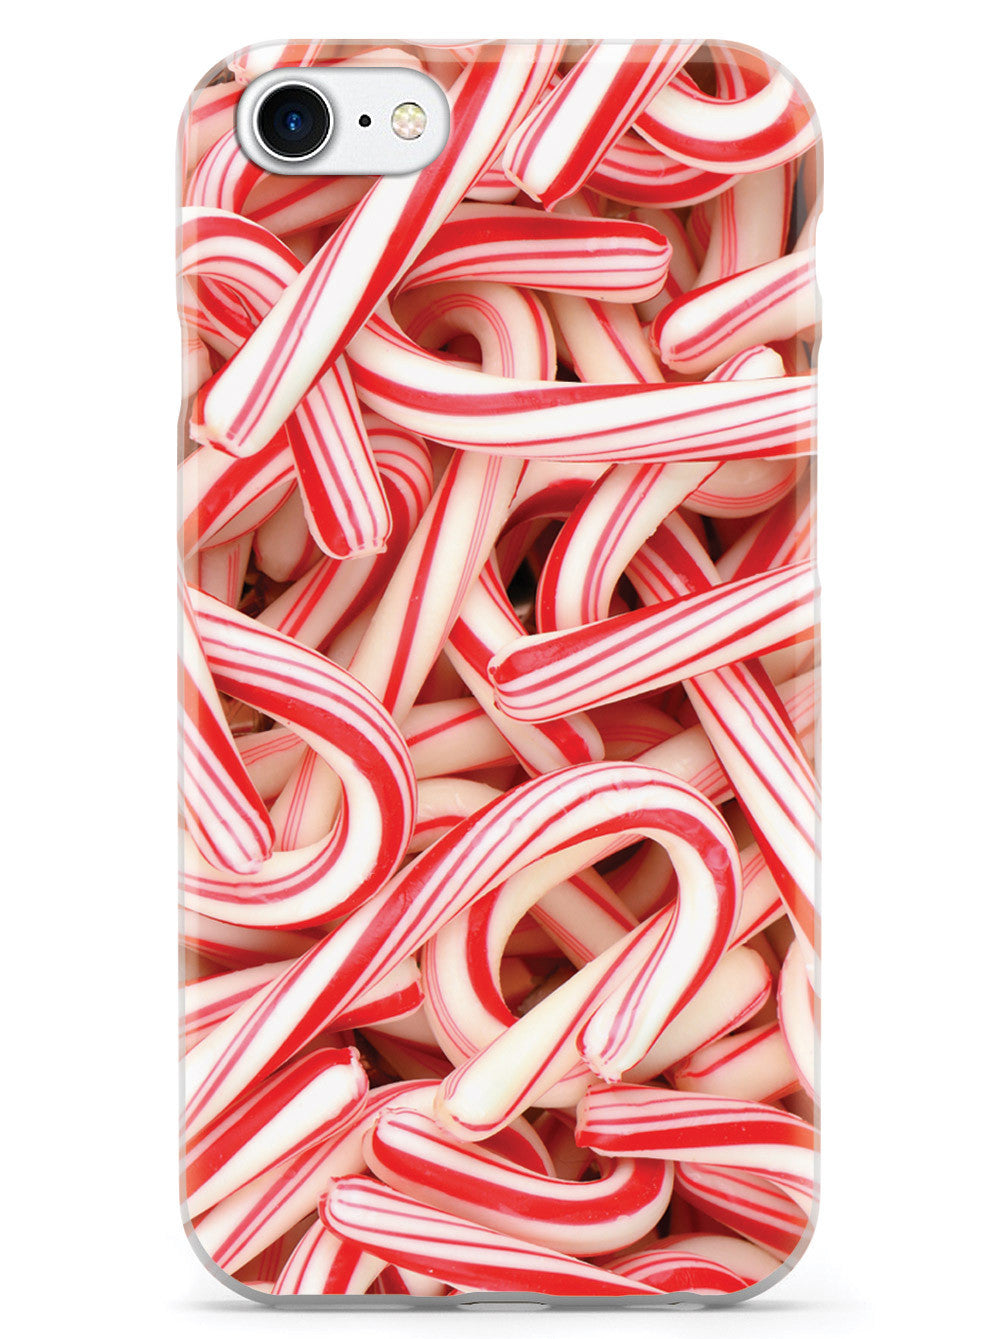 Candy Canes Case